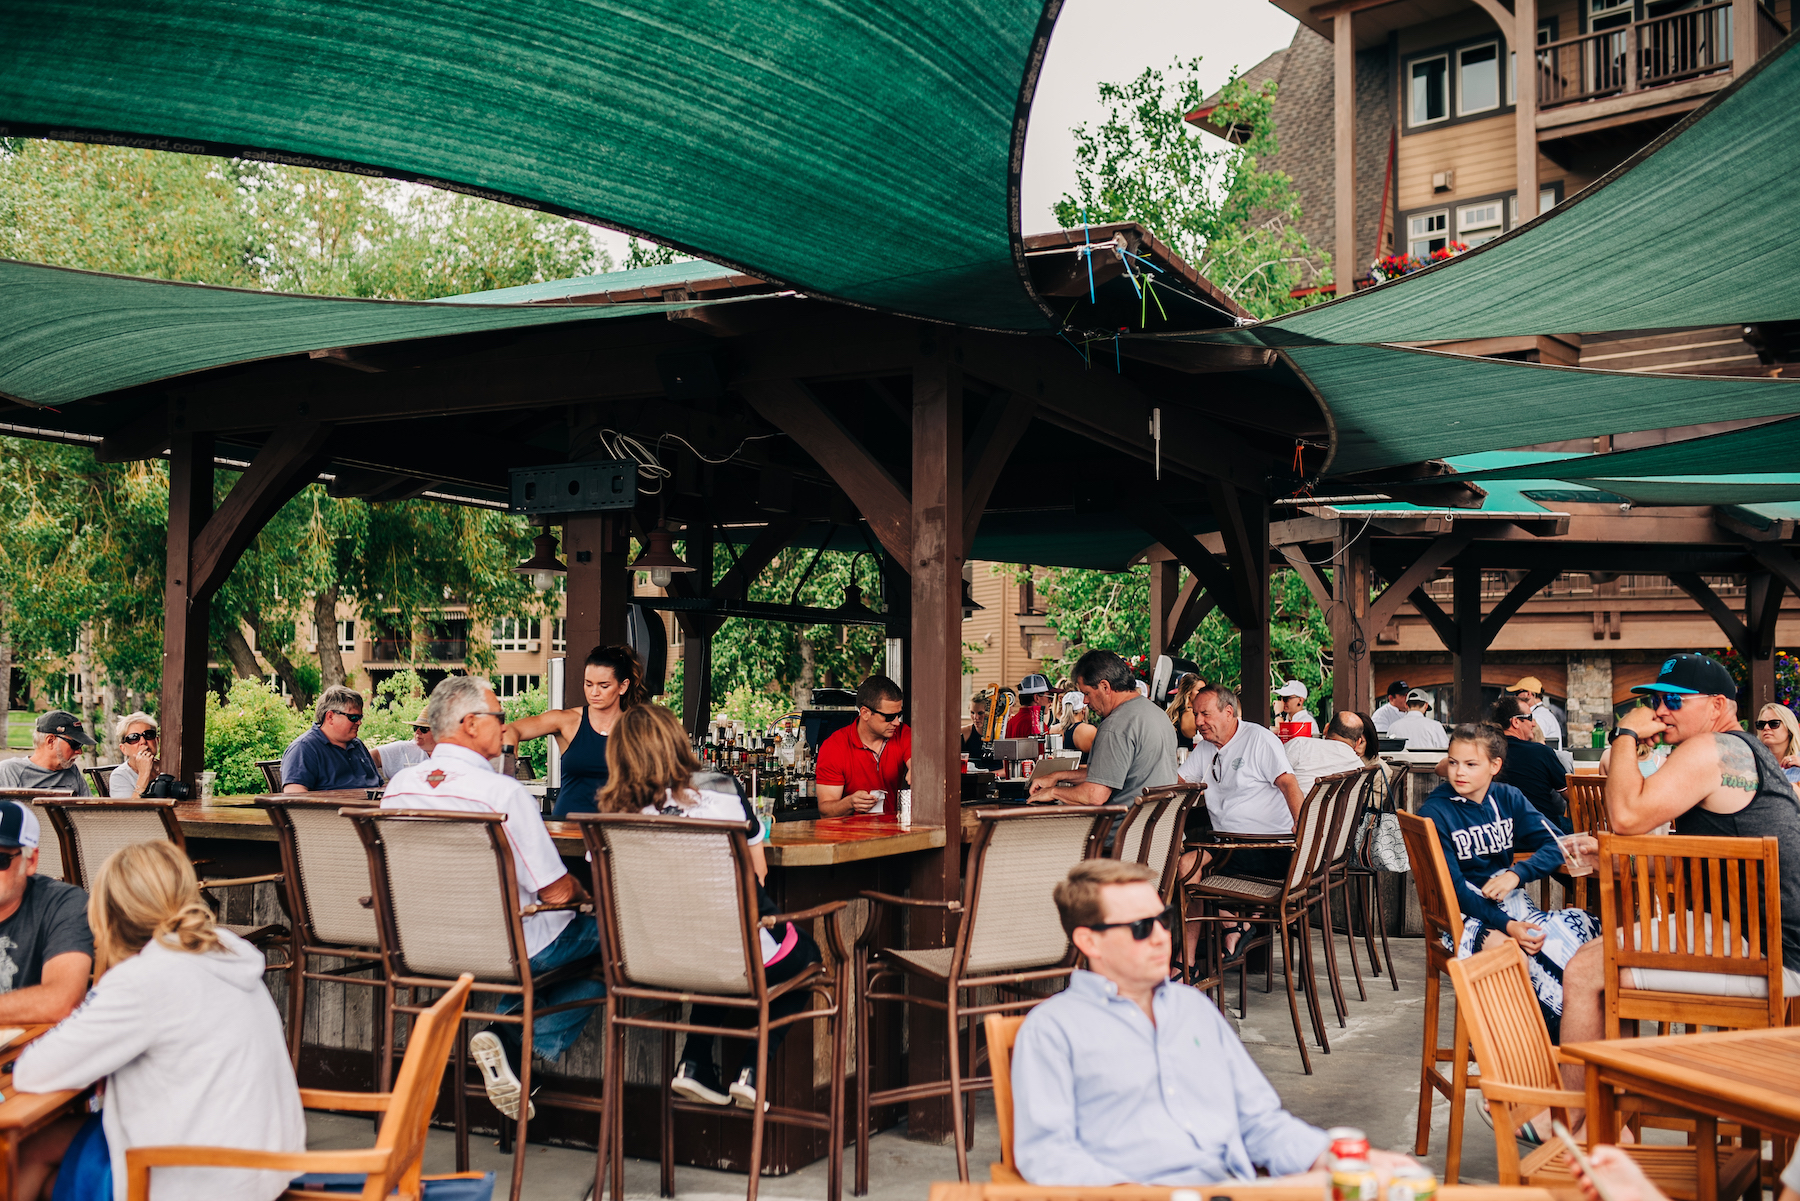 Outdoor, lakeside drinks & dining at The Tiki Bar & Grill